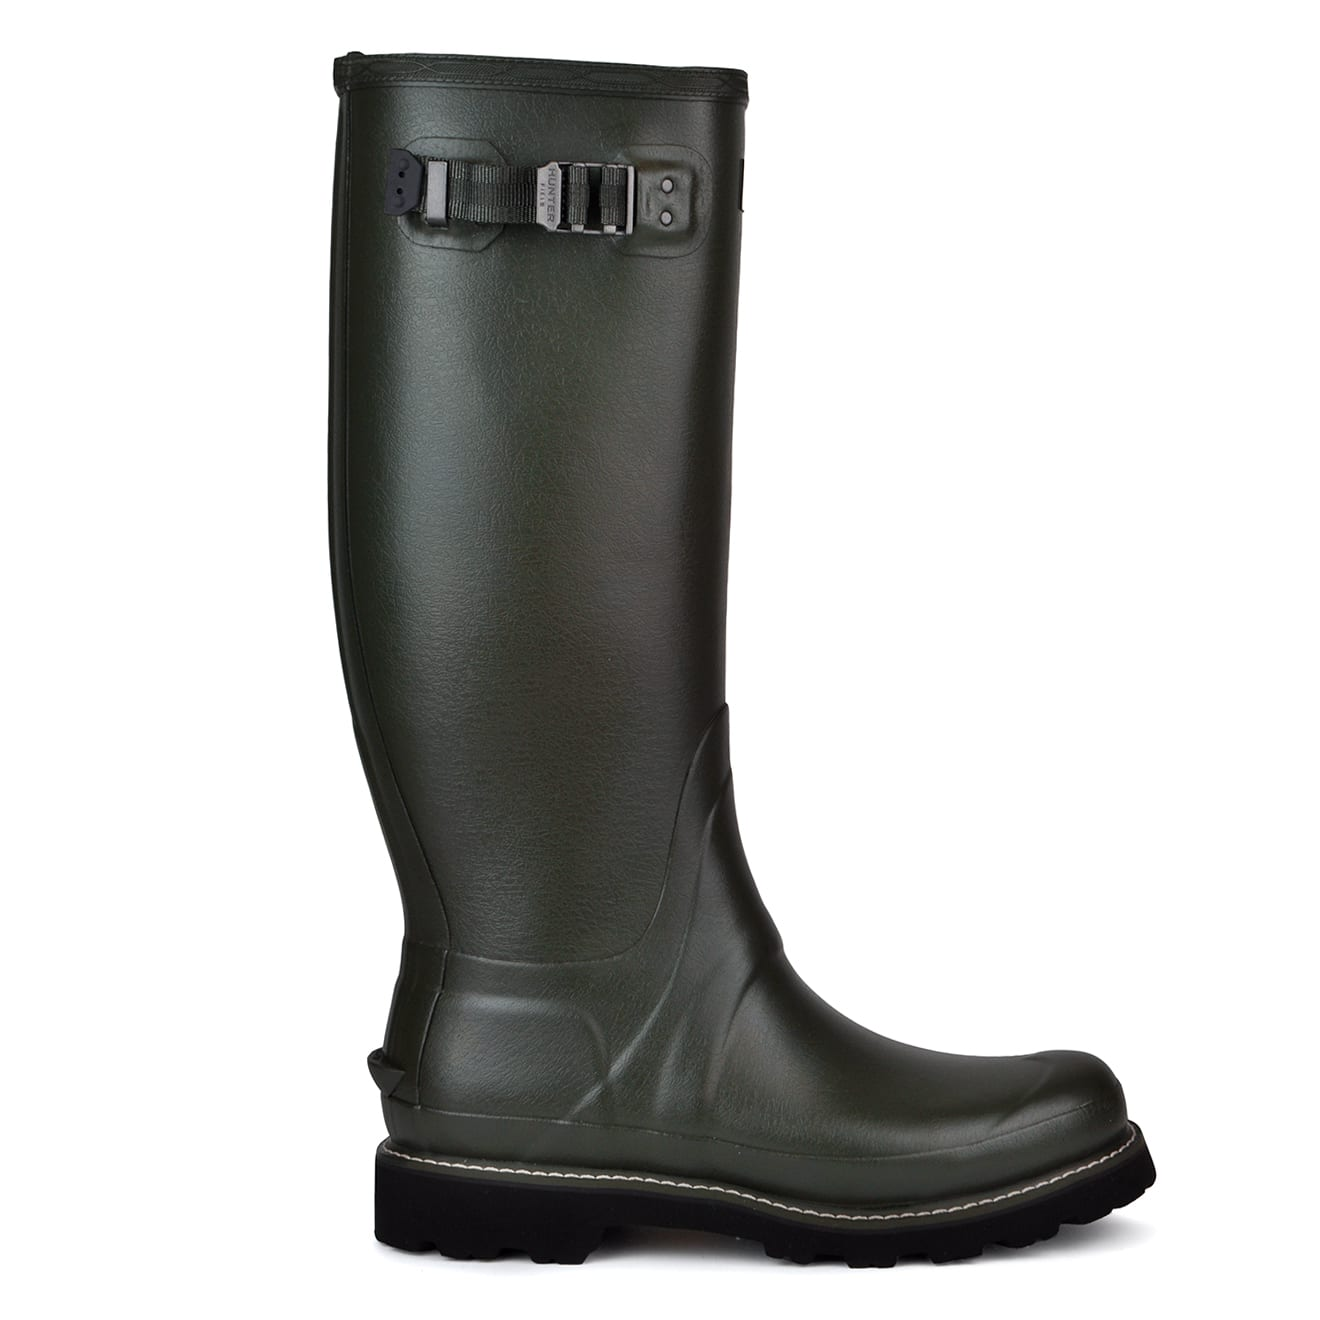 Hunter balmoral wellington boots dark olive